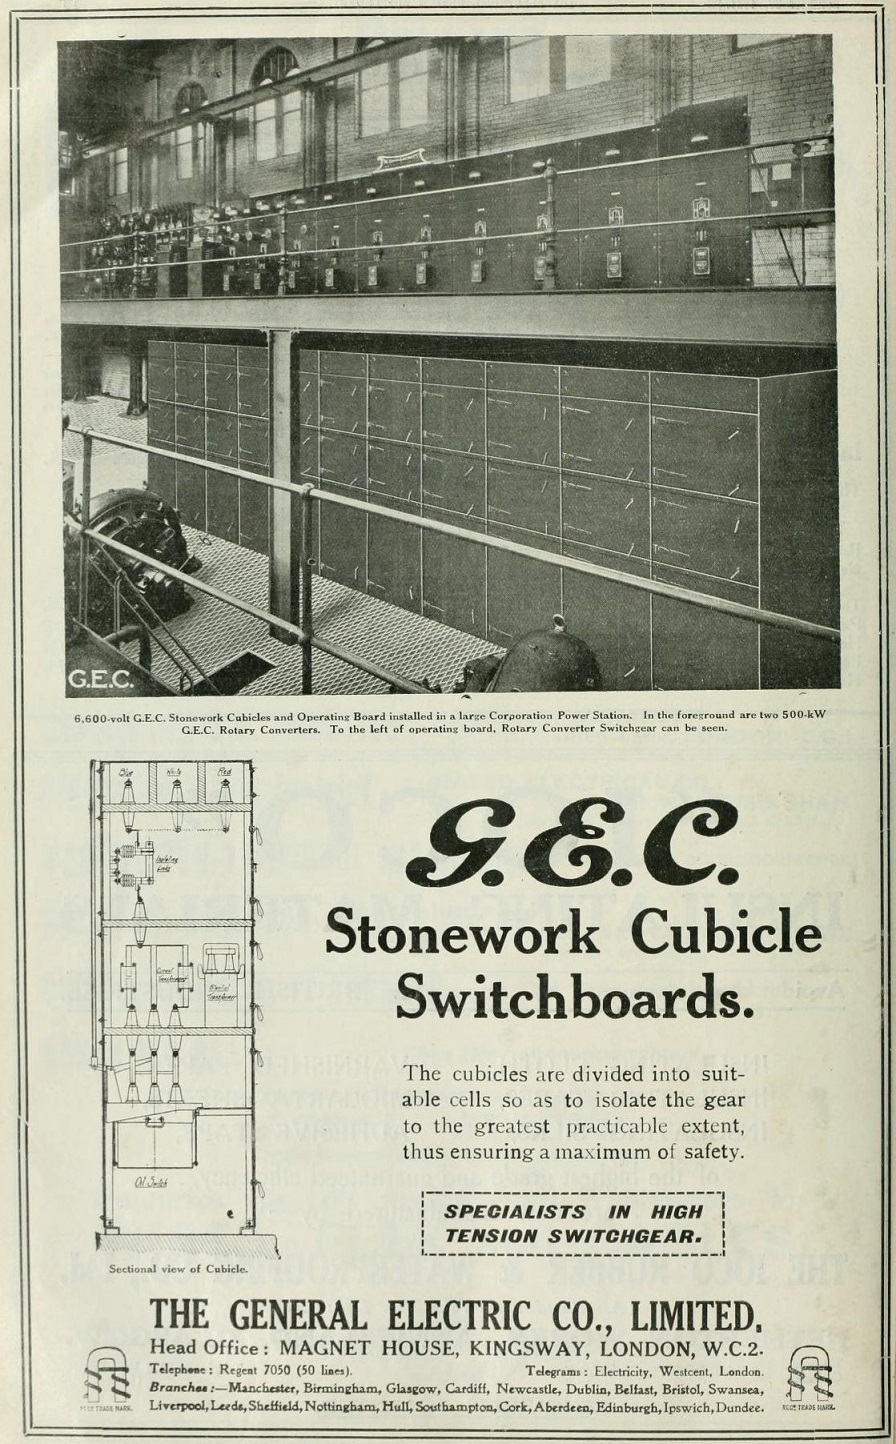 File:General Electric Company switchgear 1921.jpg